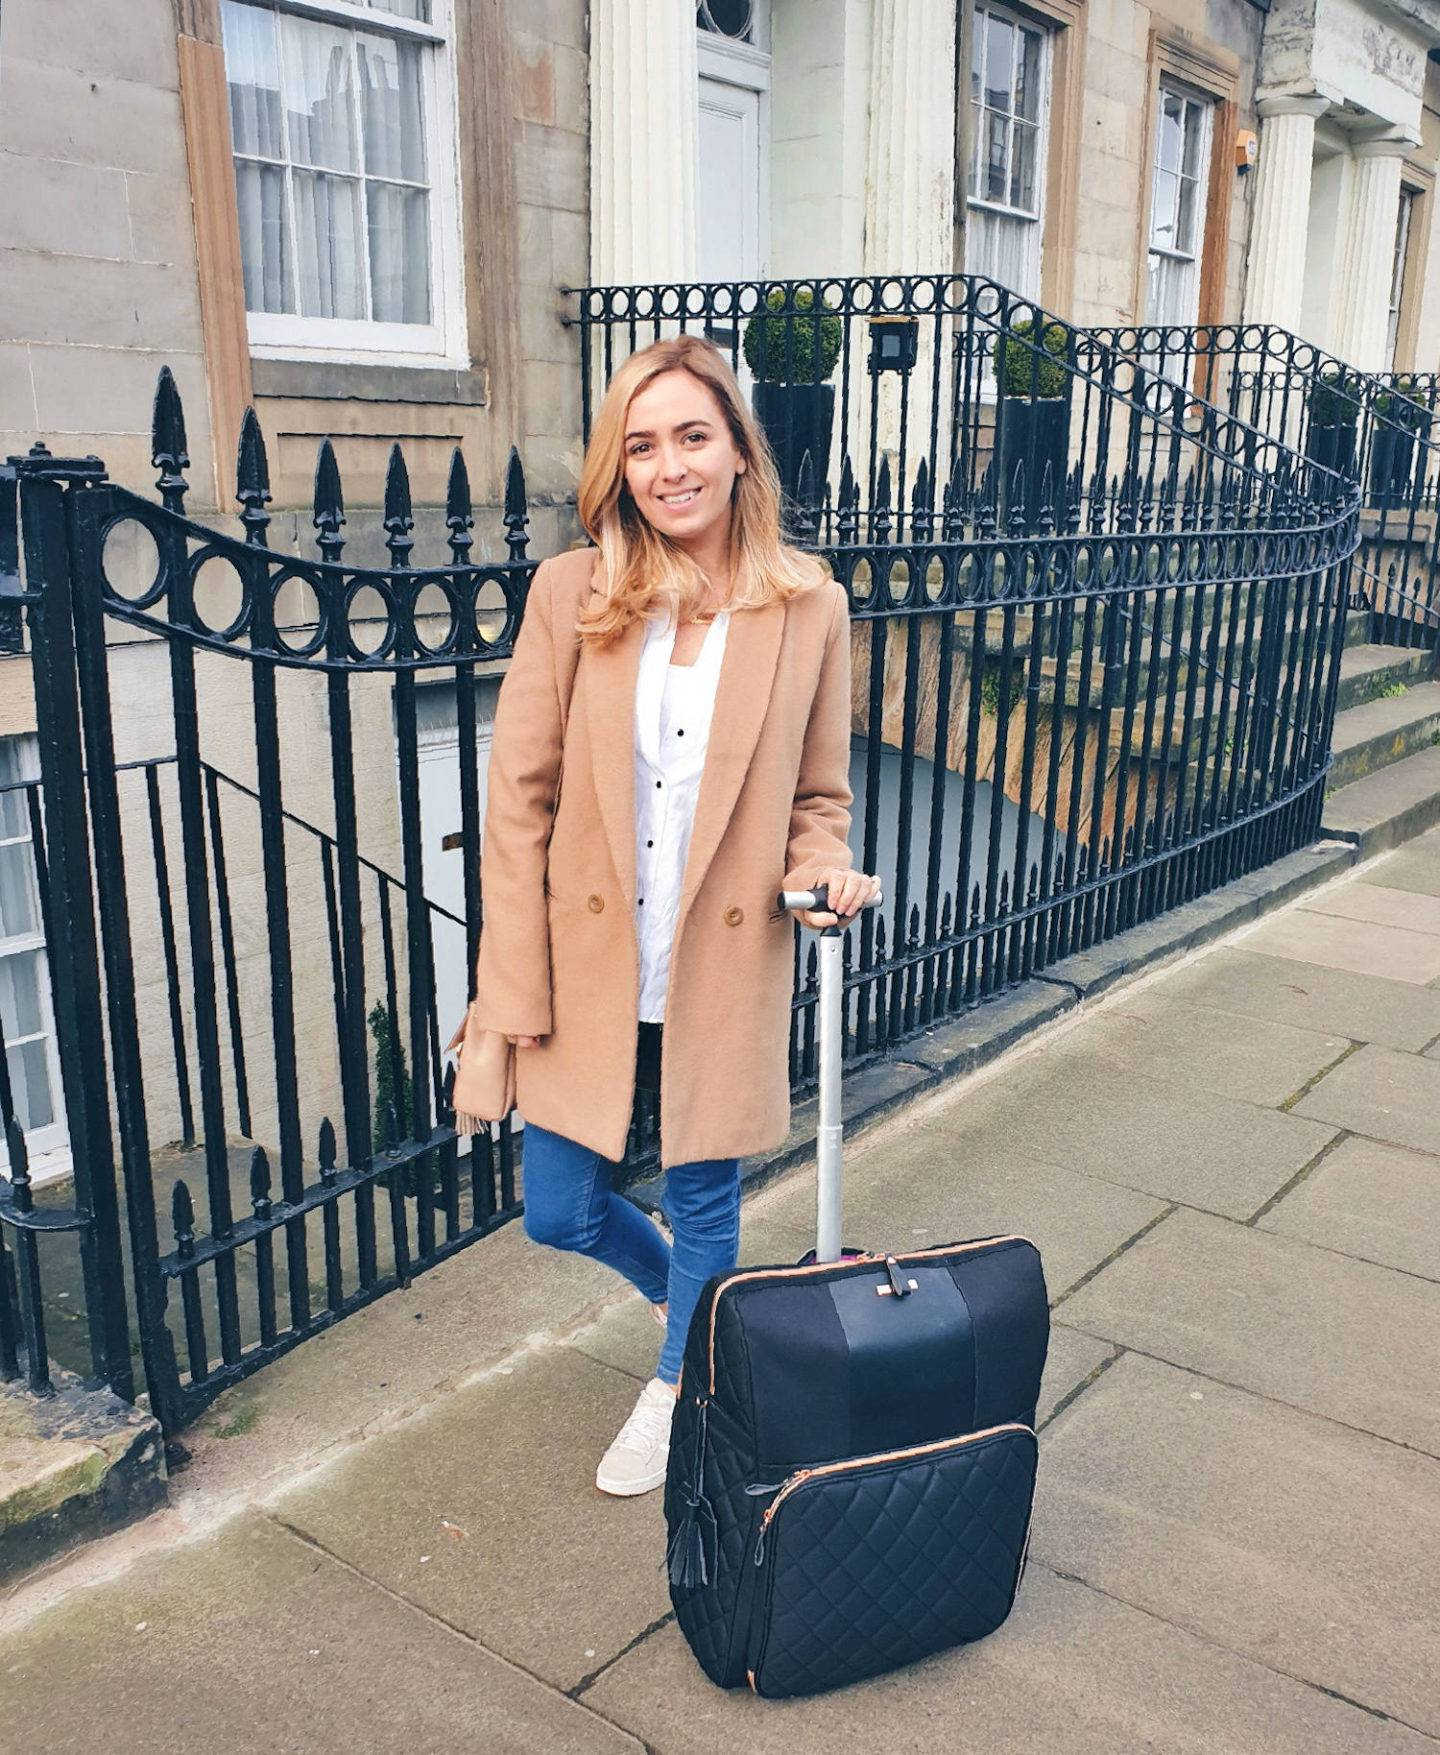 Travel Hack Pro Cabin Bag Review: The Most Stylish Women's Carry-On